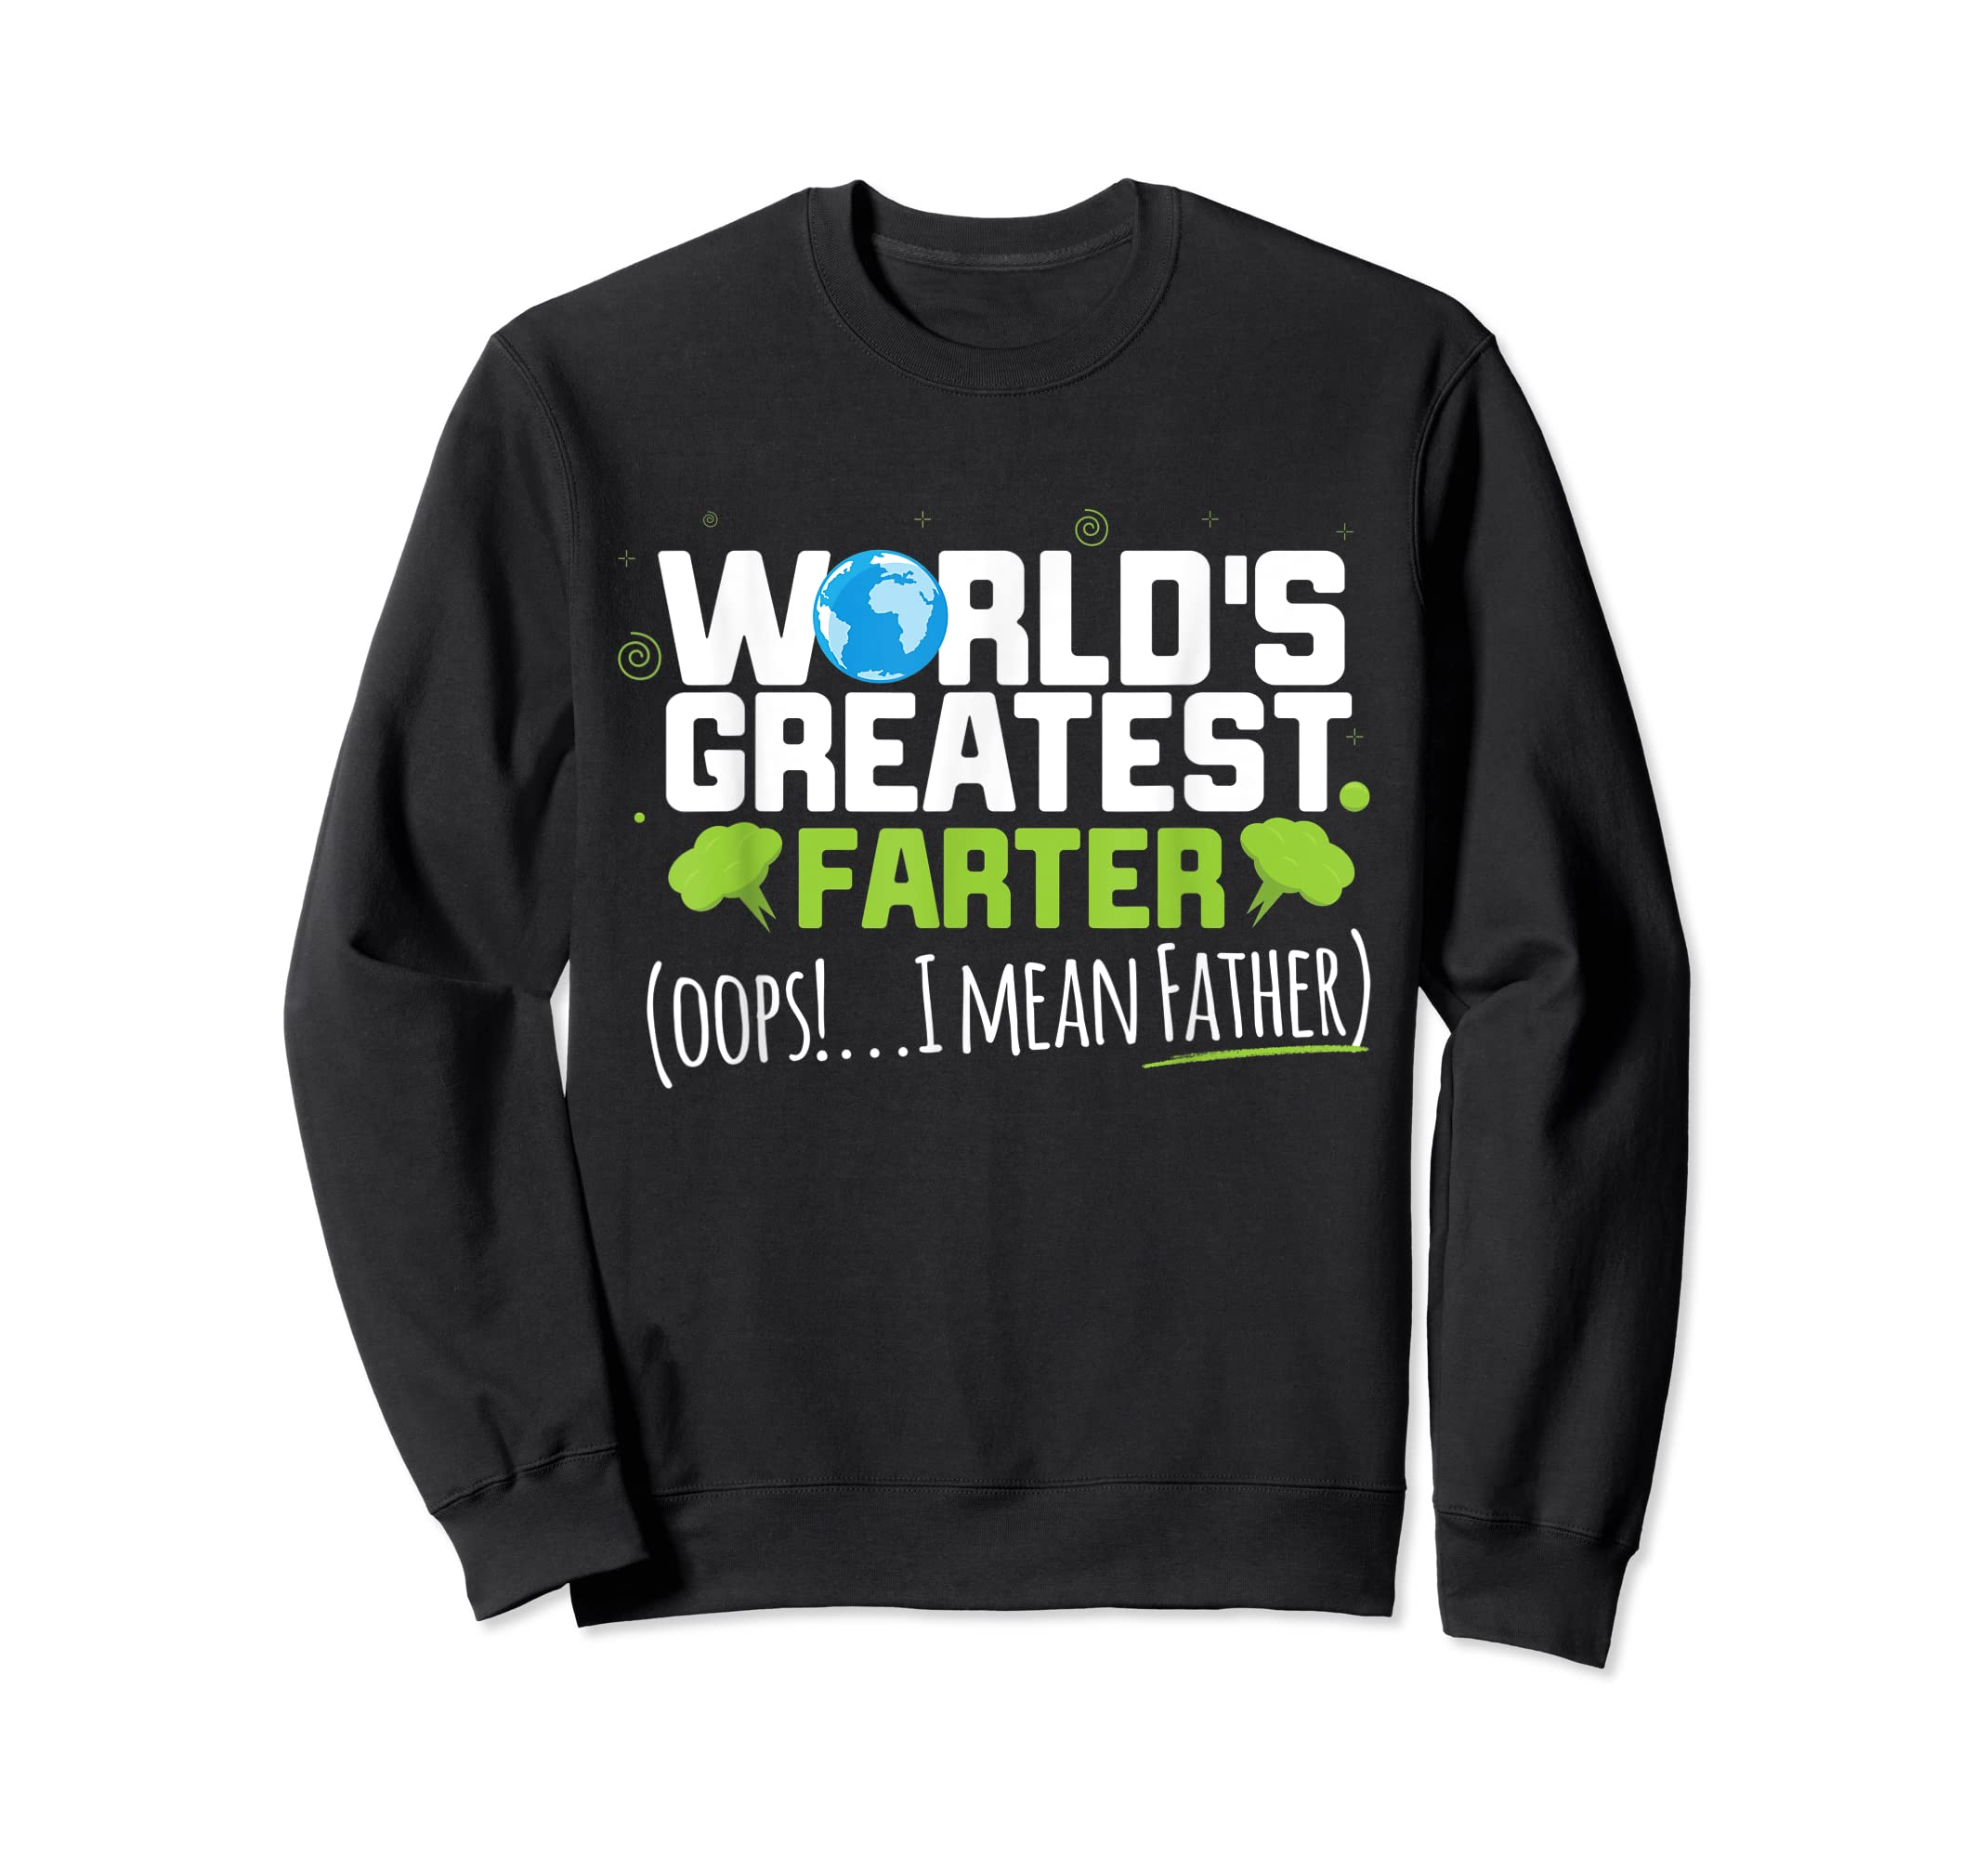 Mens World's Greatest Farter Oops! I Mean Father Shirt-Sweatshirt-Black